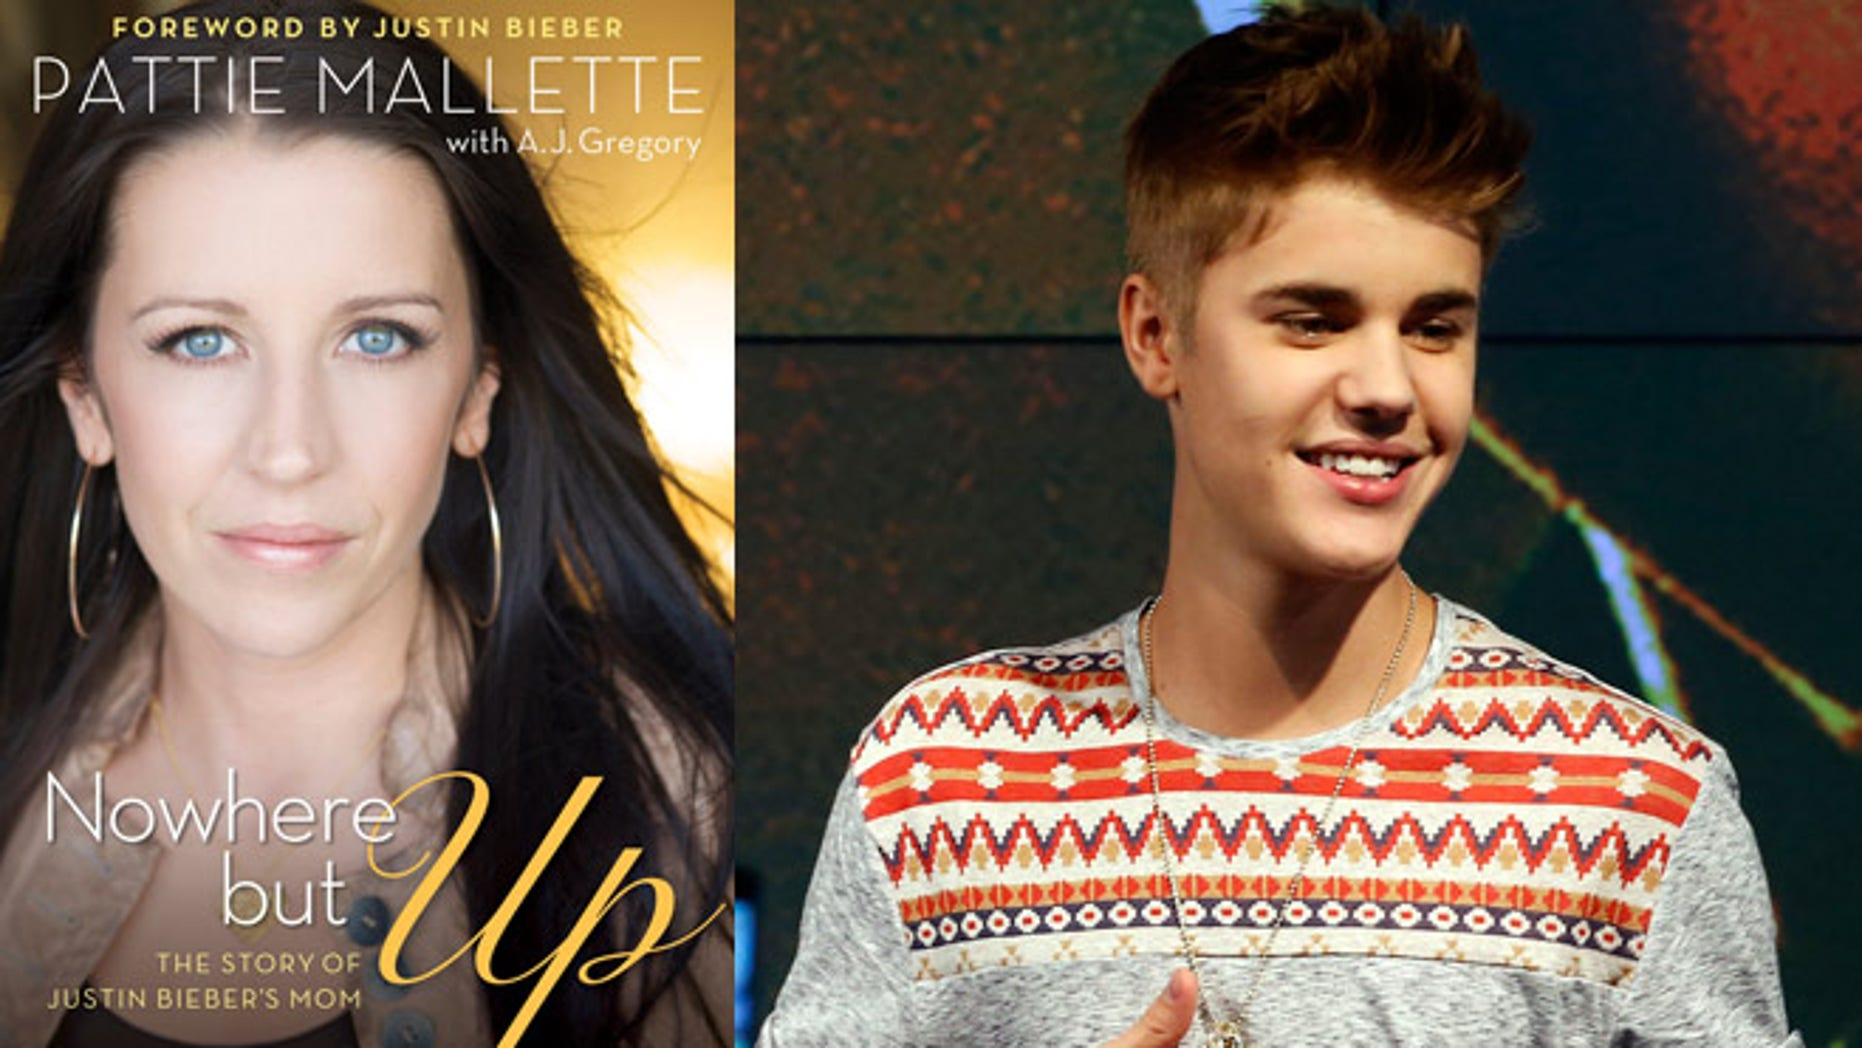 Justin Bieber's mom, Pattie Mallette, lays bare her painful